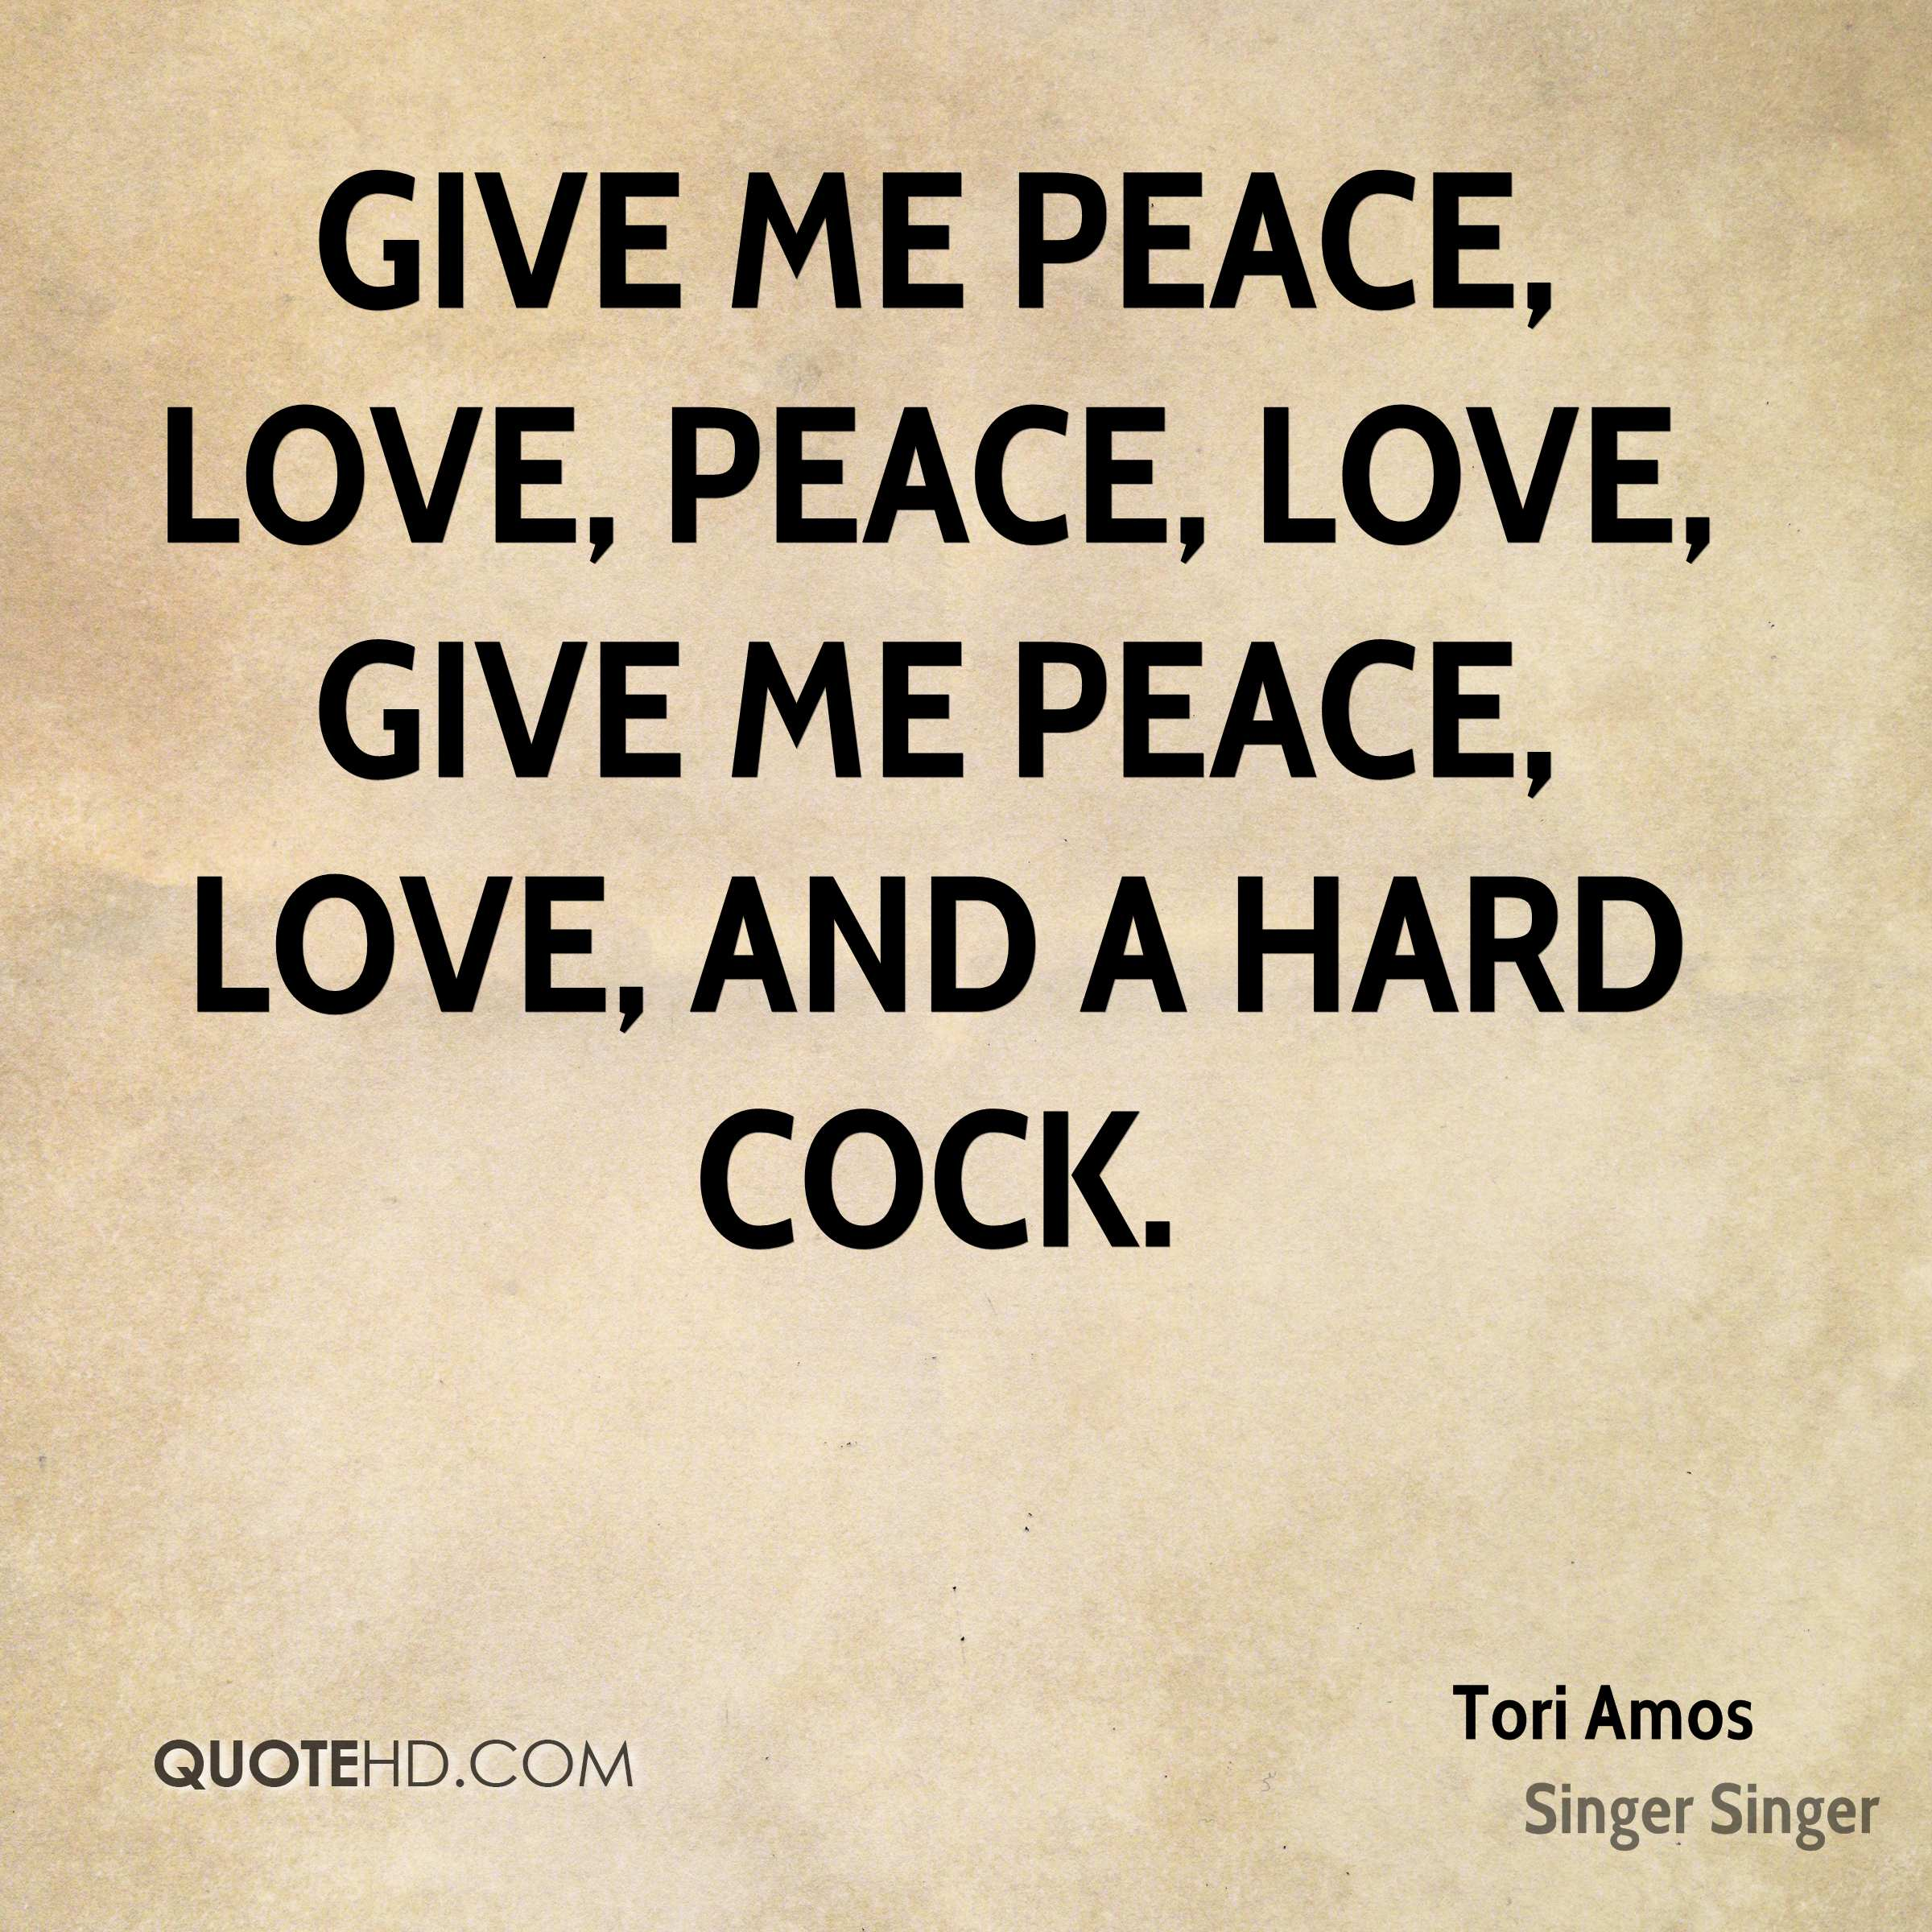 Quotes About Peace And Love Adorable Tori Amos Quotes  Quotehd